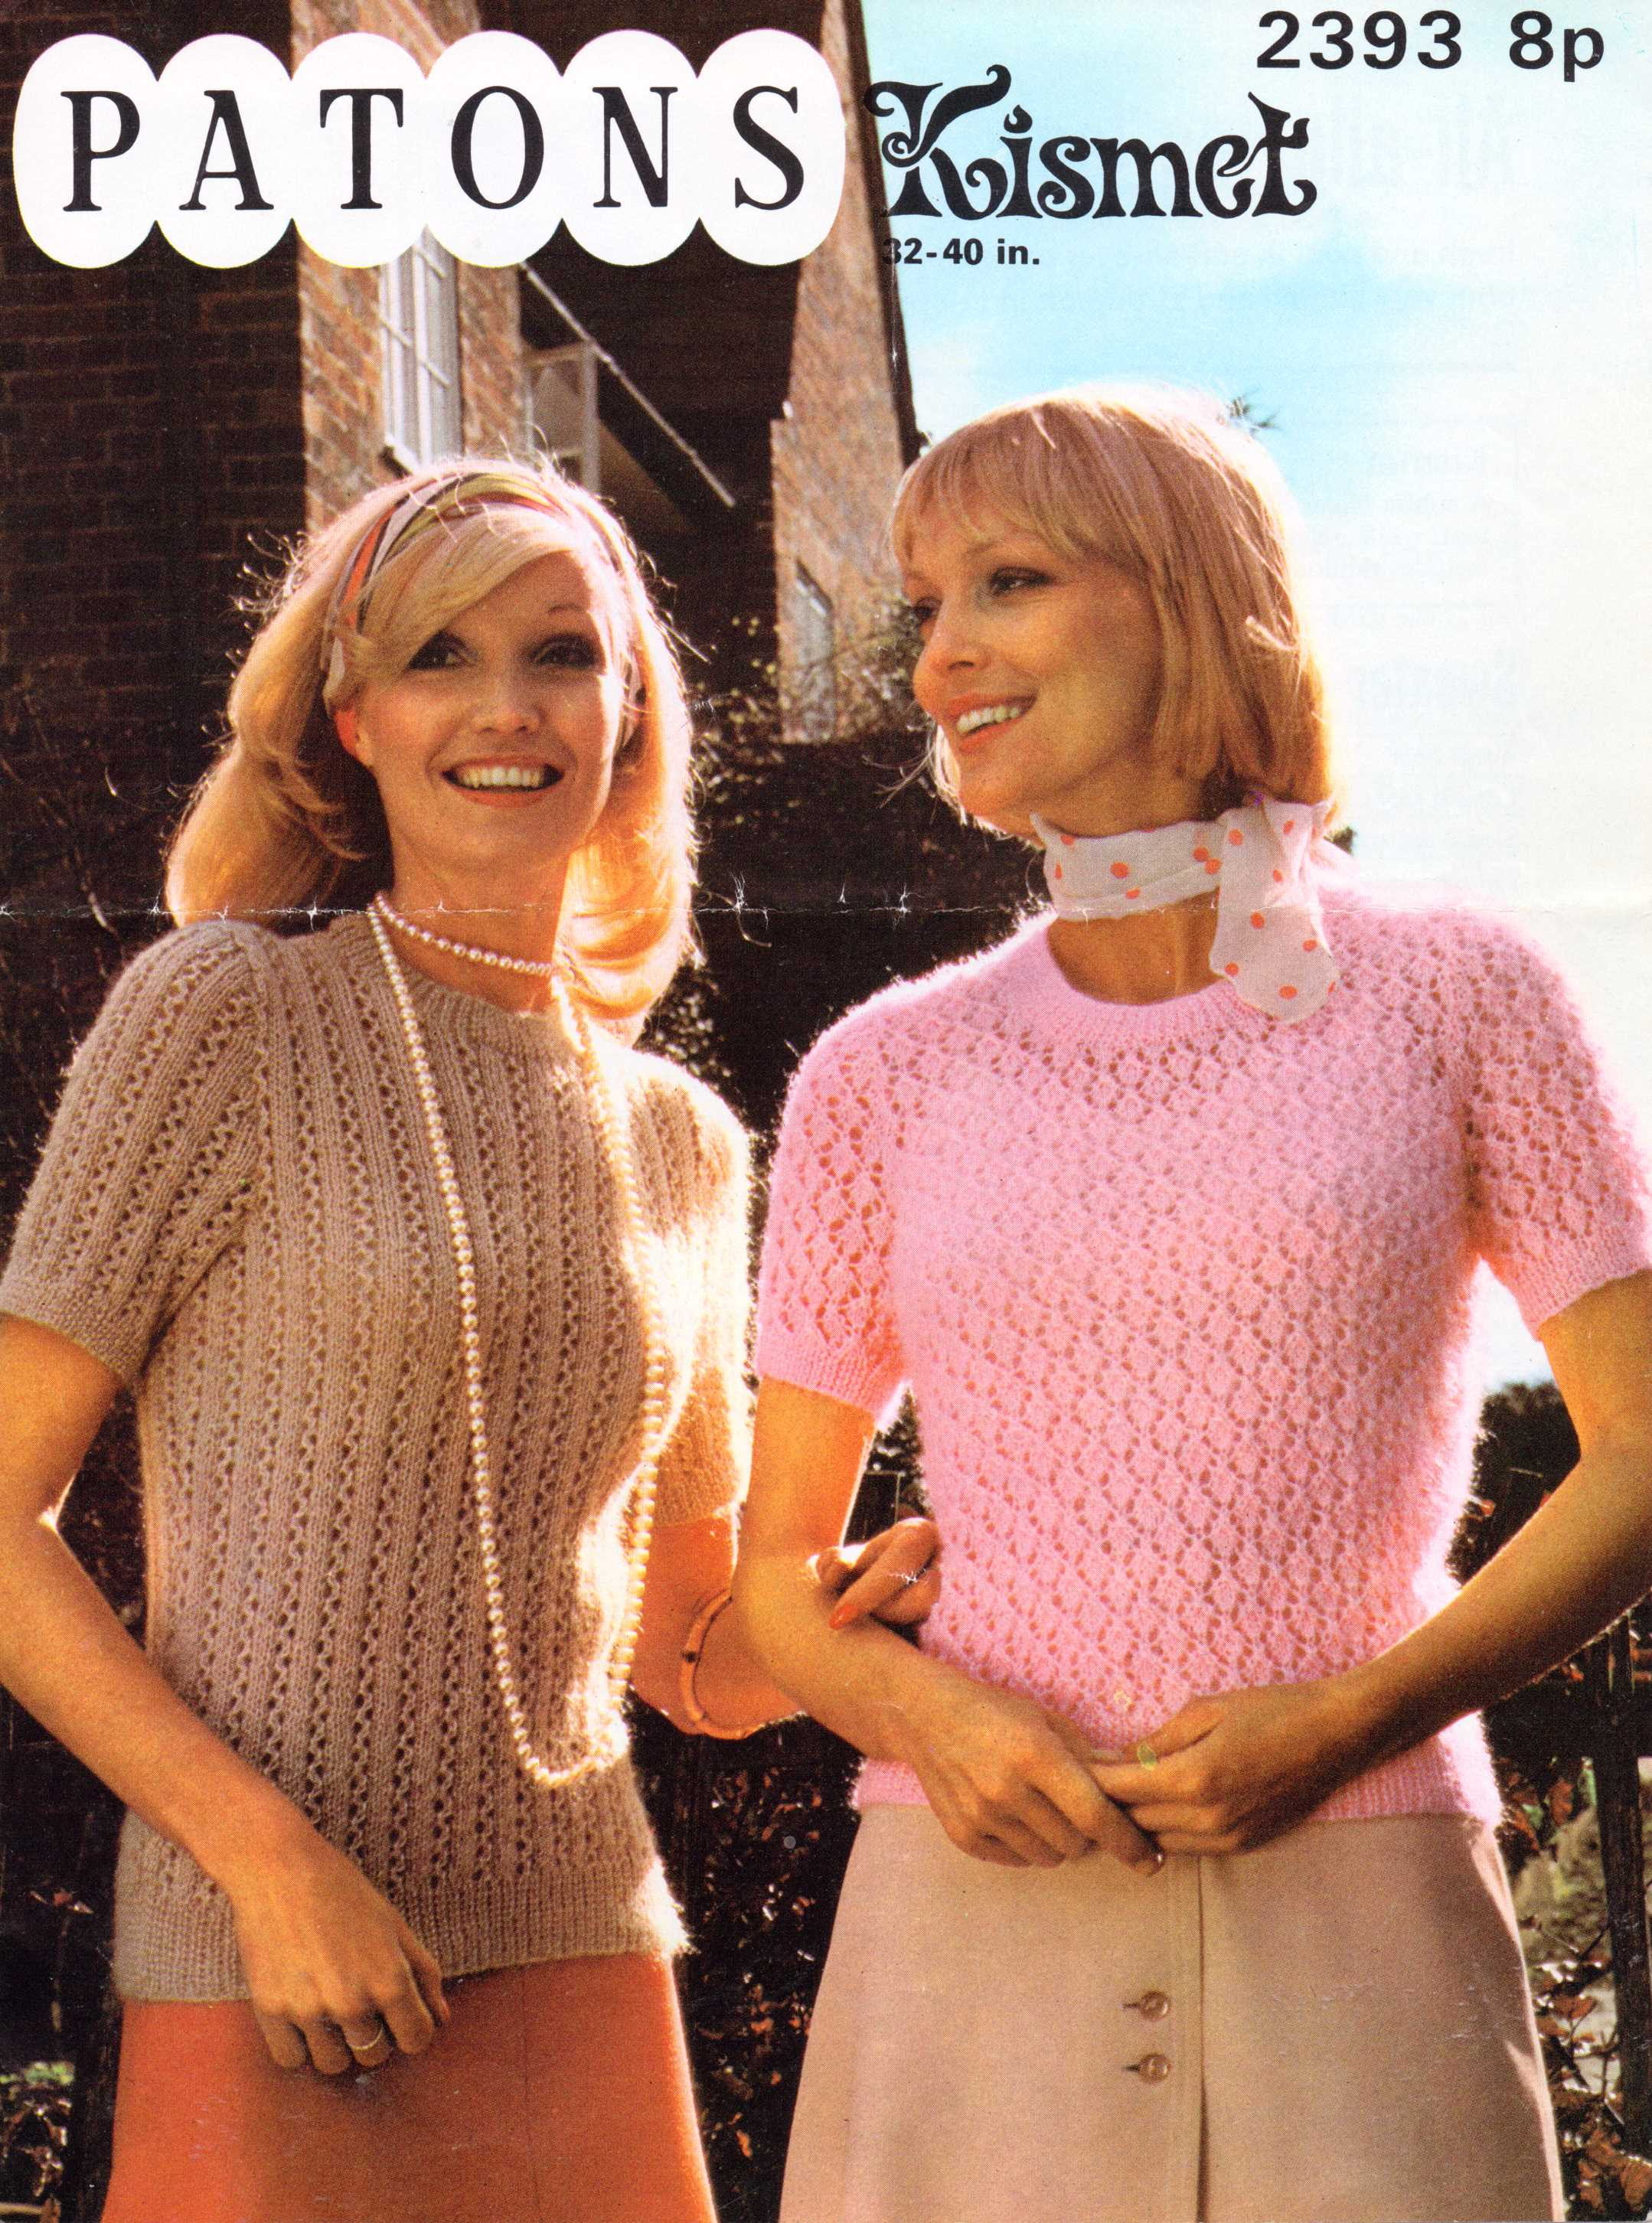 Knitting Pattern Jumper Ladies : Free Vintage Knitting Pattern: Lacey tops With Man Appeal   The Sunny Stitcher